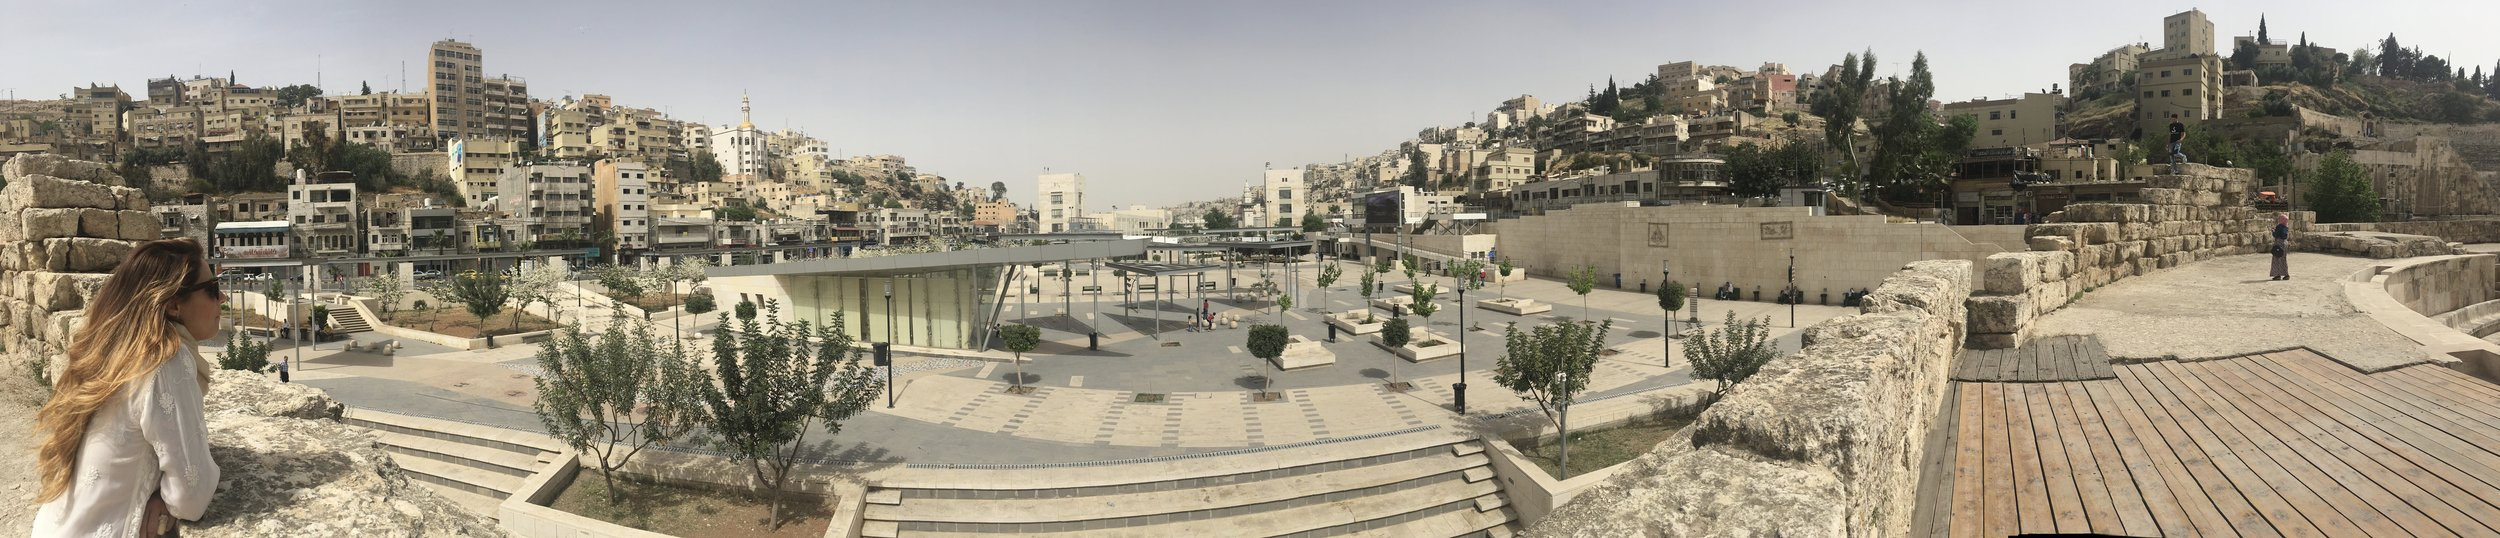 Beautiful Amman- looking over the Hashemite Plaza